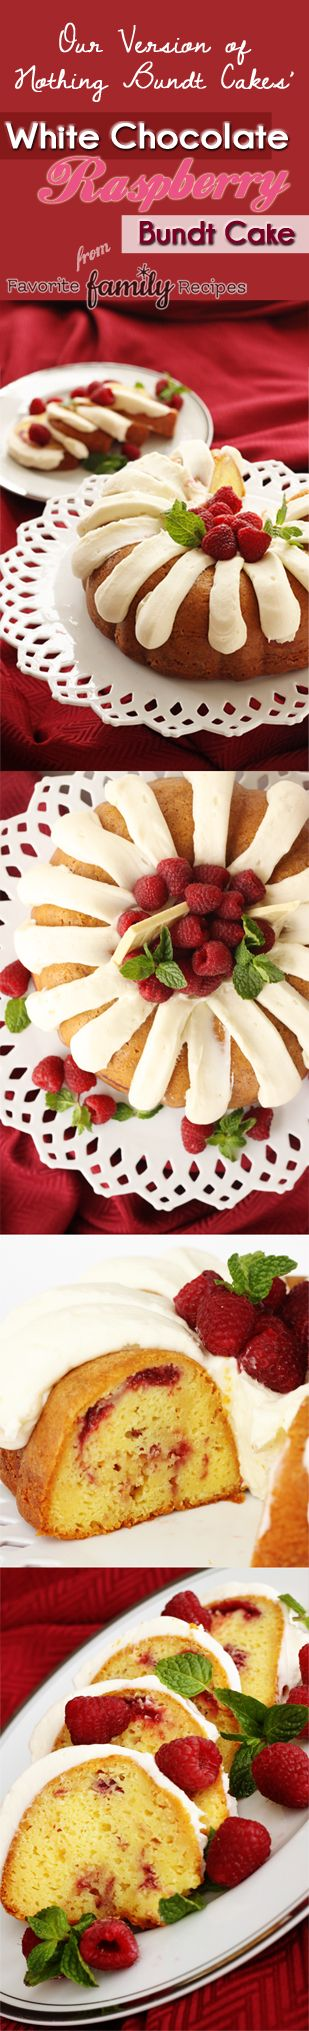 Nothing Bundt Cakes' White Chocolate Raspberry Cake -- PERFECT for Valentine's Day! Find all our yummy pins at https://www.pinterest.com/favfamilyrecipz/